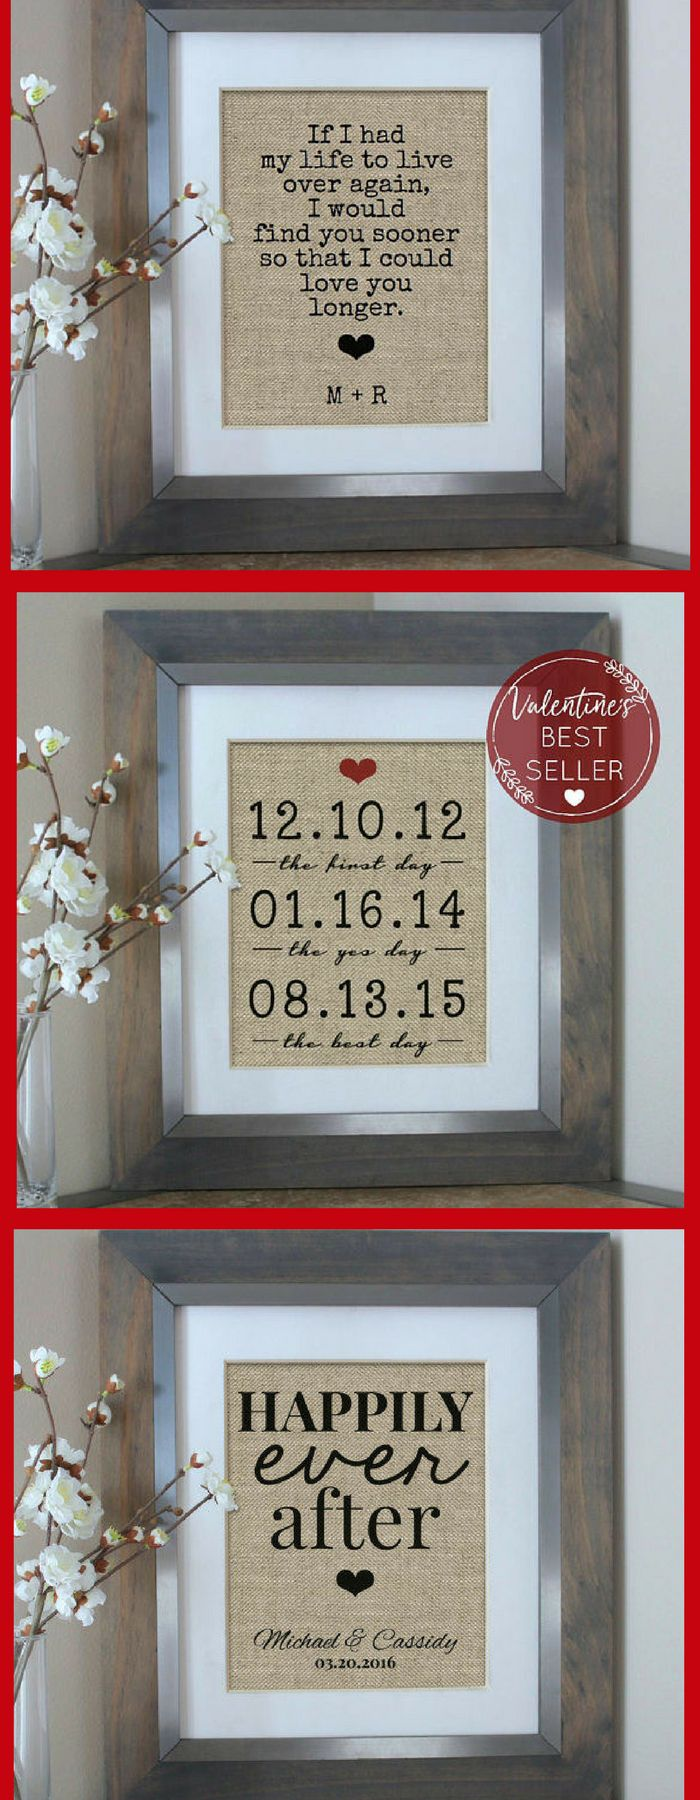 BEAUTIFUL WALL DECOR! Perfect for anniversary, wedding, Valentines Day, house warming, and so much more. I already ordered one for my fiance and I! #affiliatelink #gifts #love #relationships #wedding #valentinesday